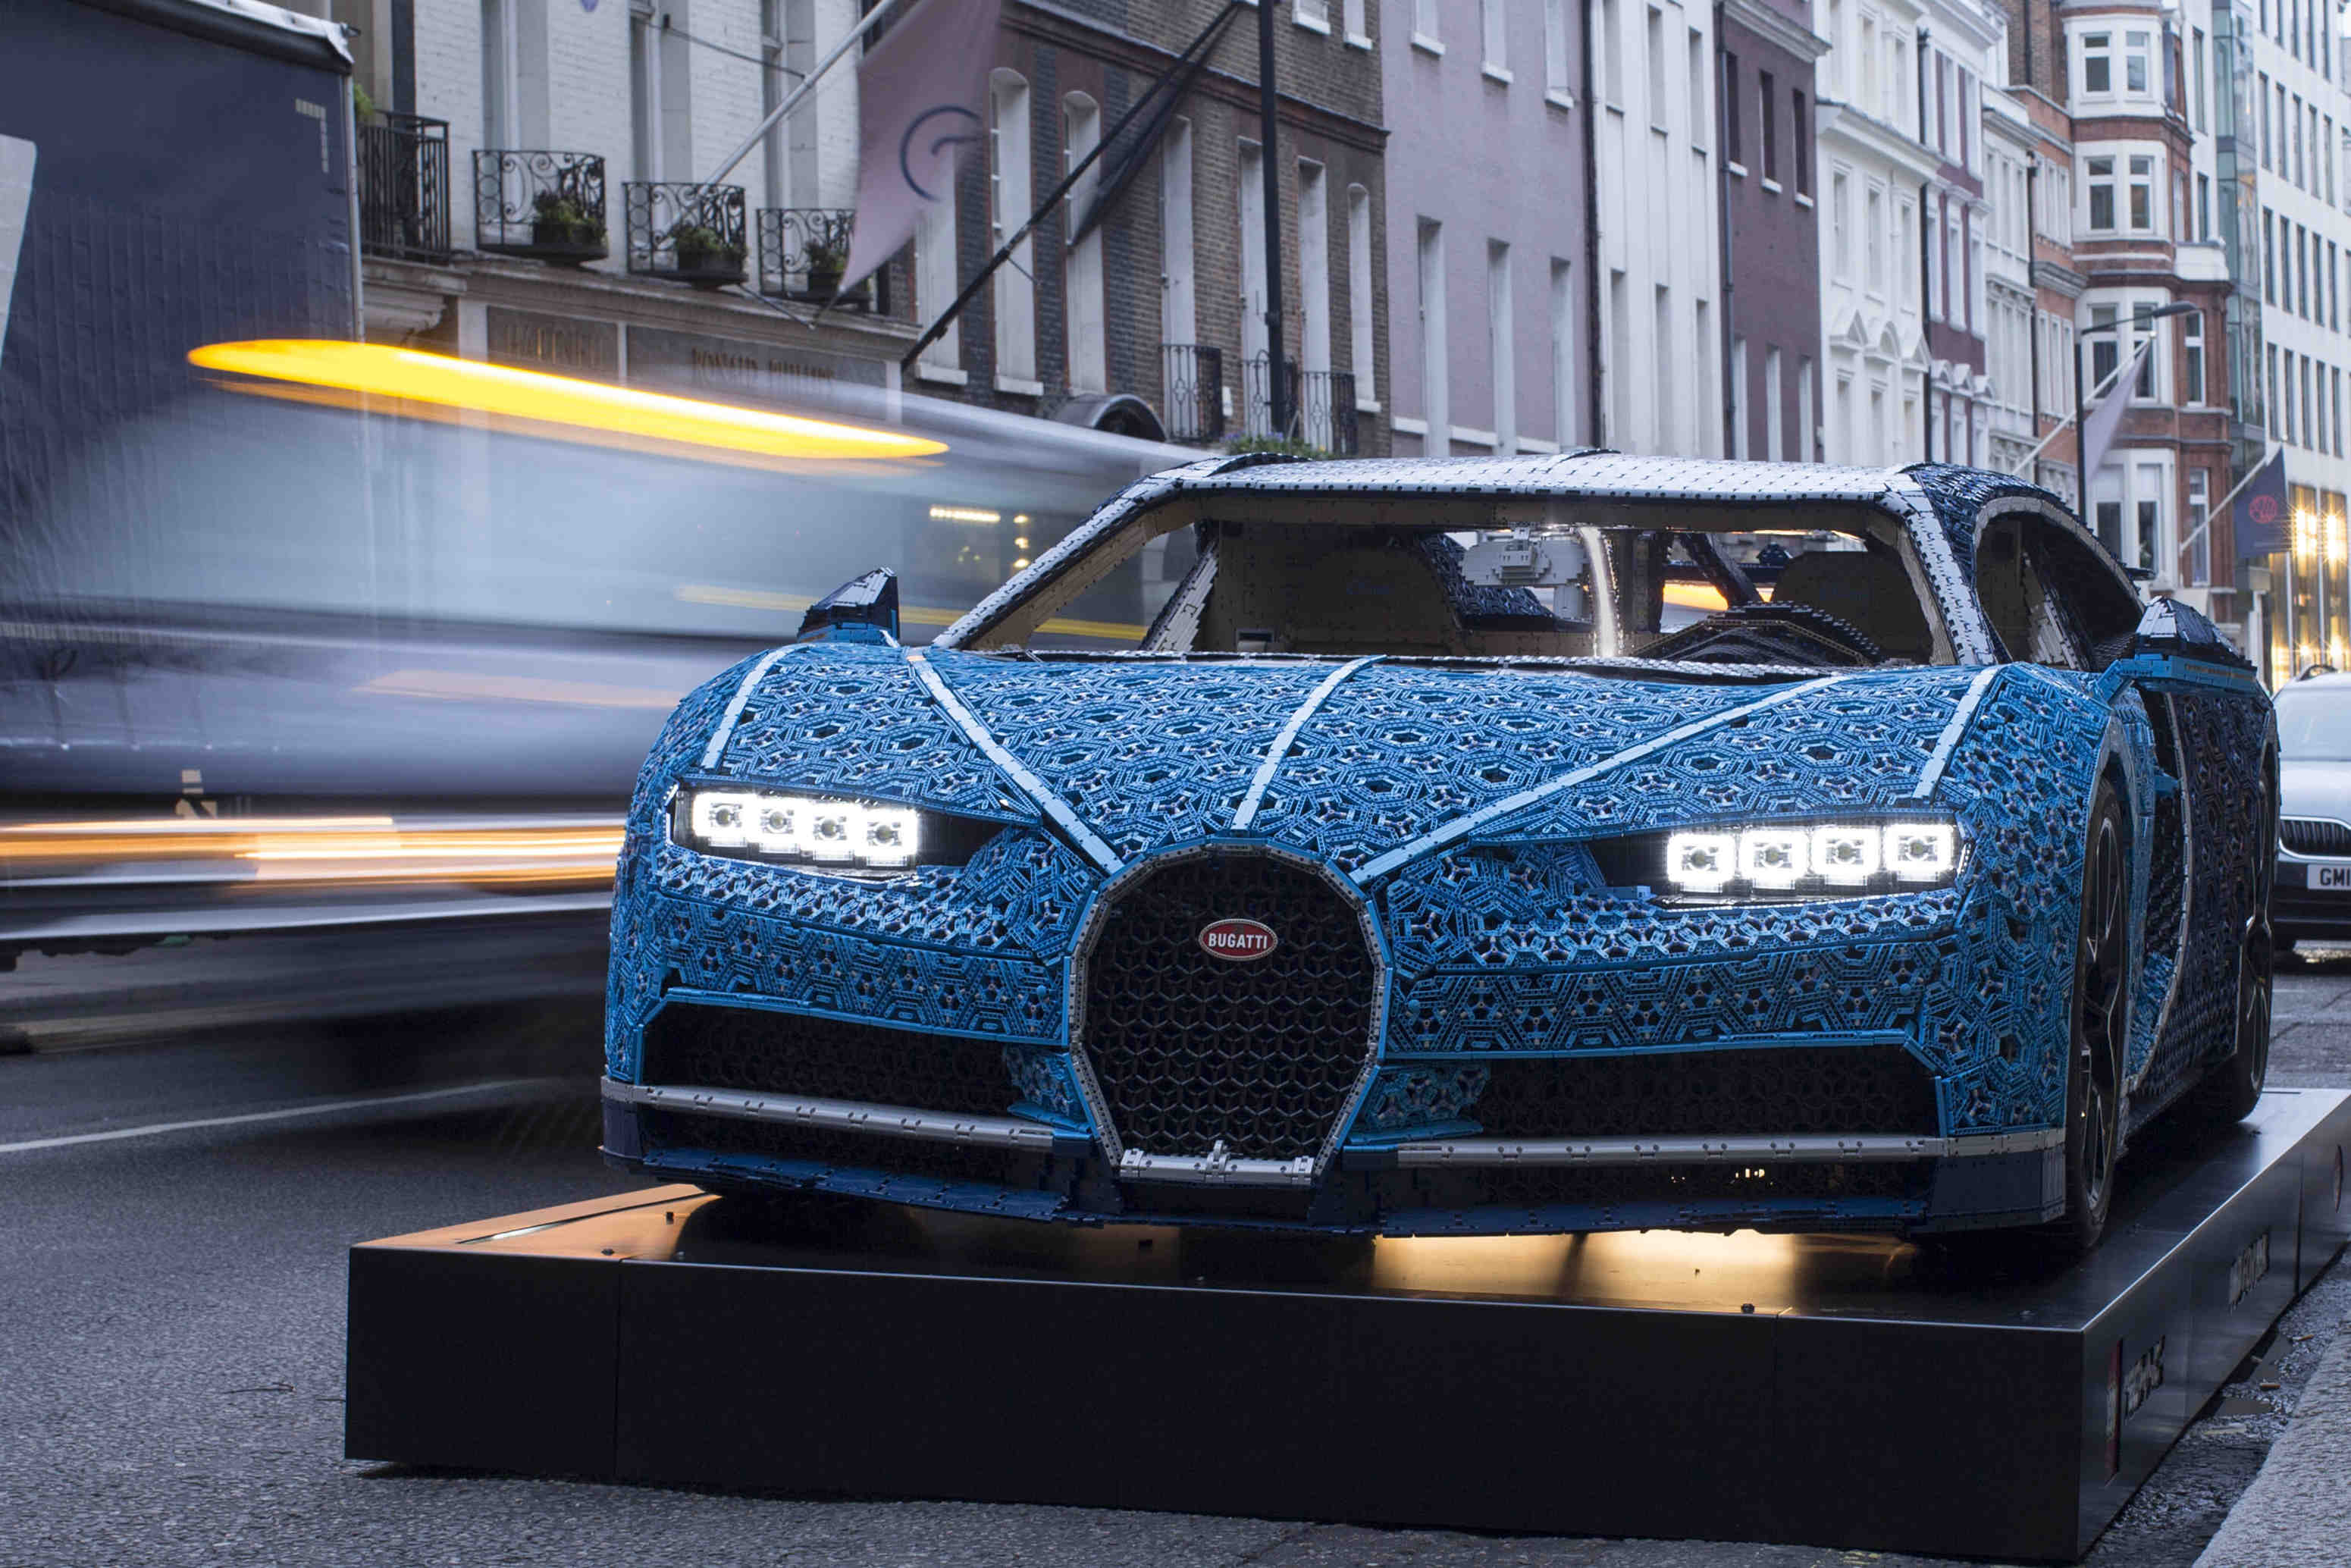 Pictured in LondonÕs Mayfair at the Bugatti showroom - the worldÕs only life-size Bugatti Chiron built entirely from LEGO Technic has arrived in London today, marking the start of its first-ever visit to the UK. The one-of-a-kind build was created by LEGO master builders entirely from LEGO Technic, and is made up of over 1,000,000 elements. It is powered exclusively using 2,304 motors from the LEGO Power Function platform.